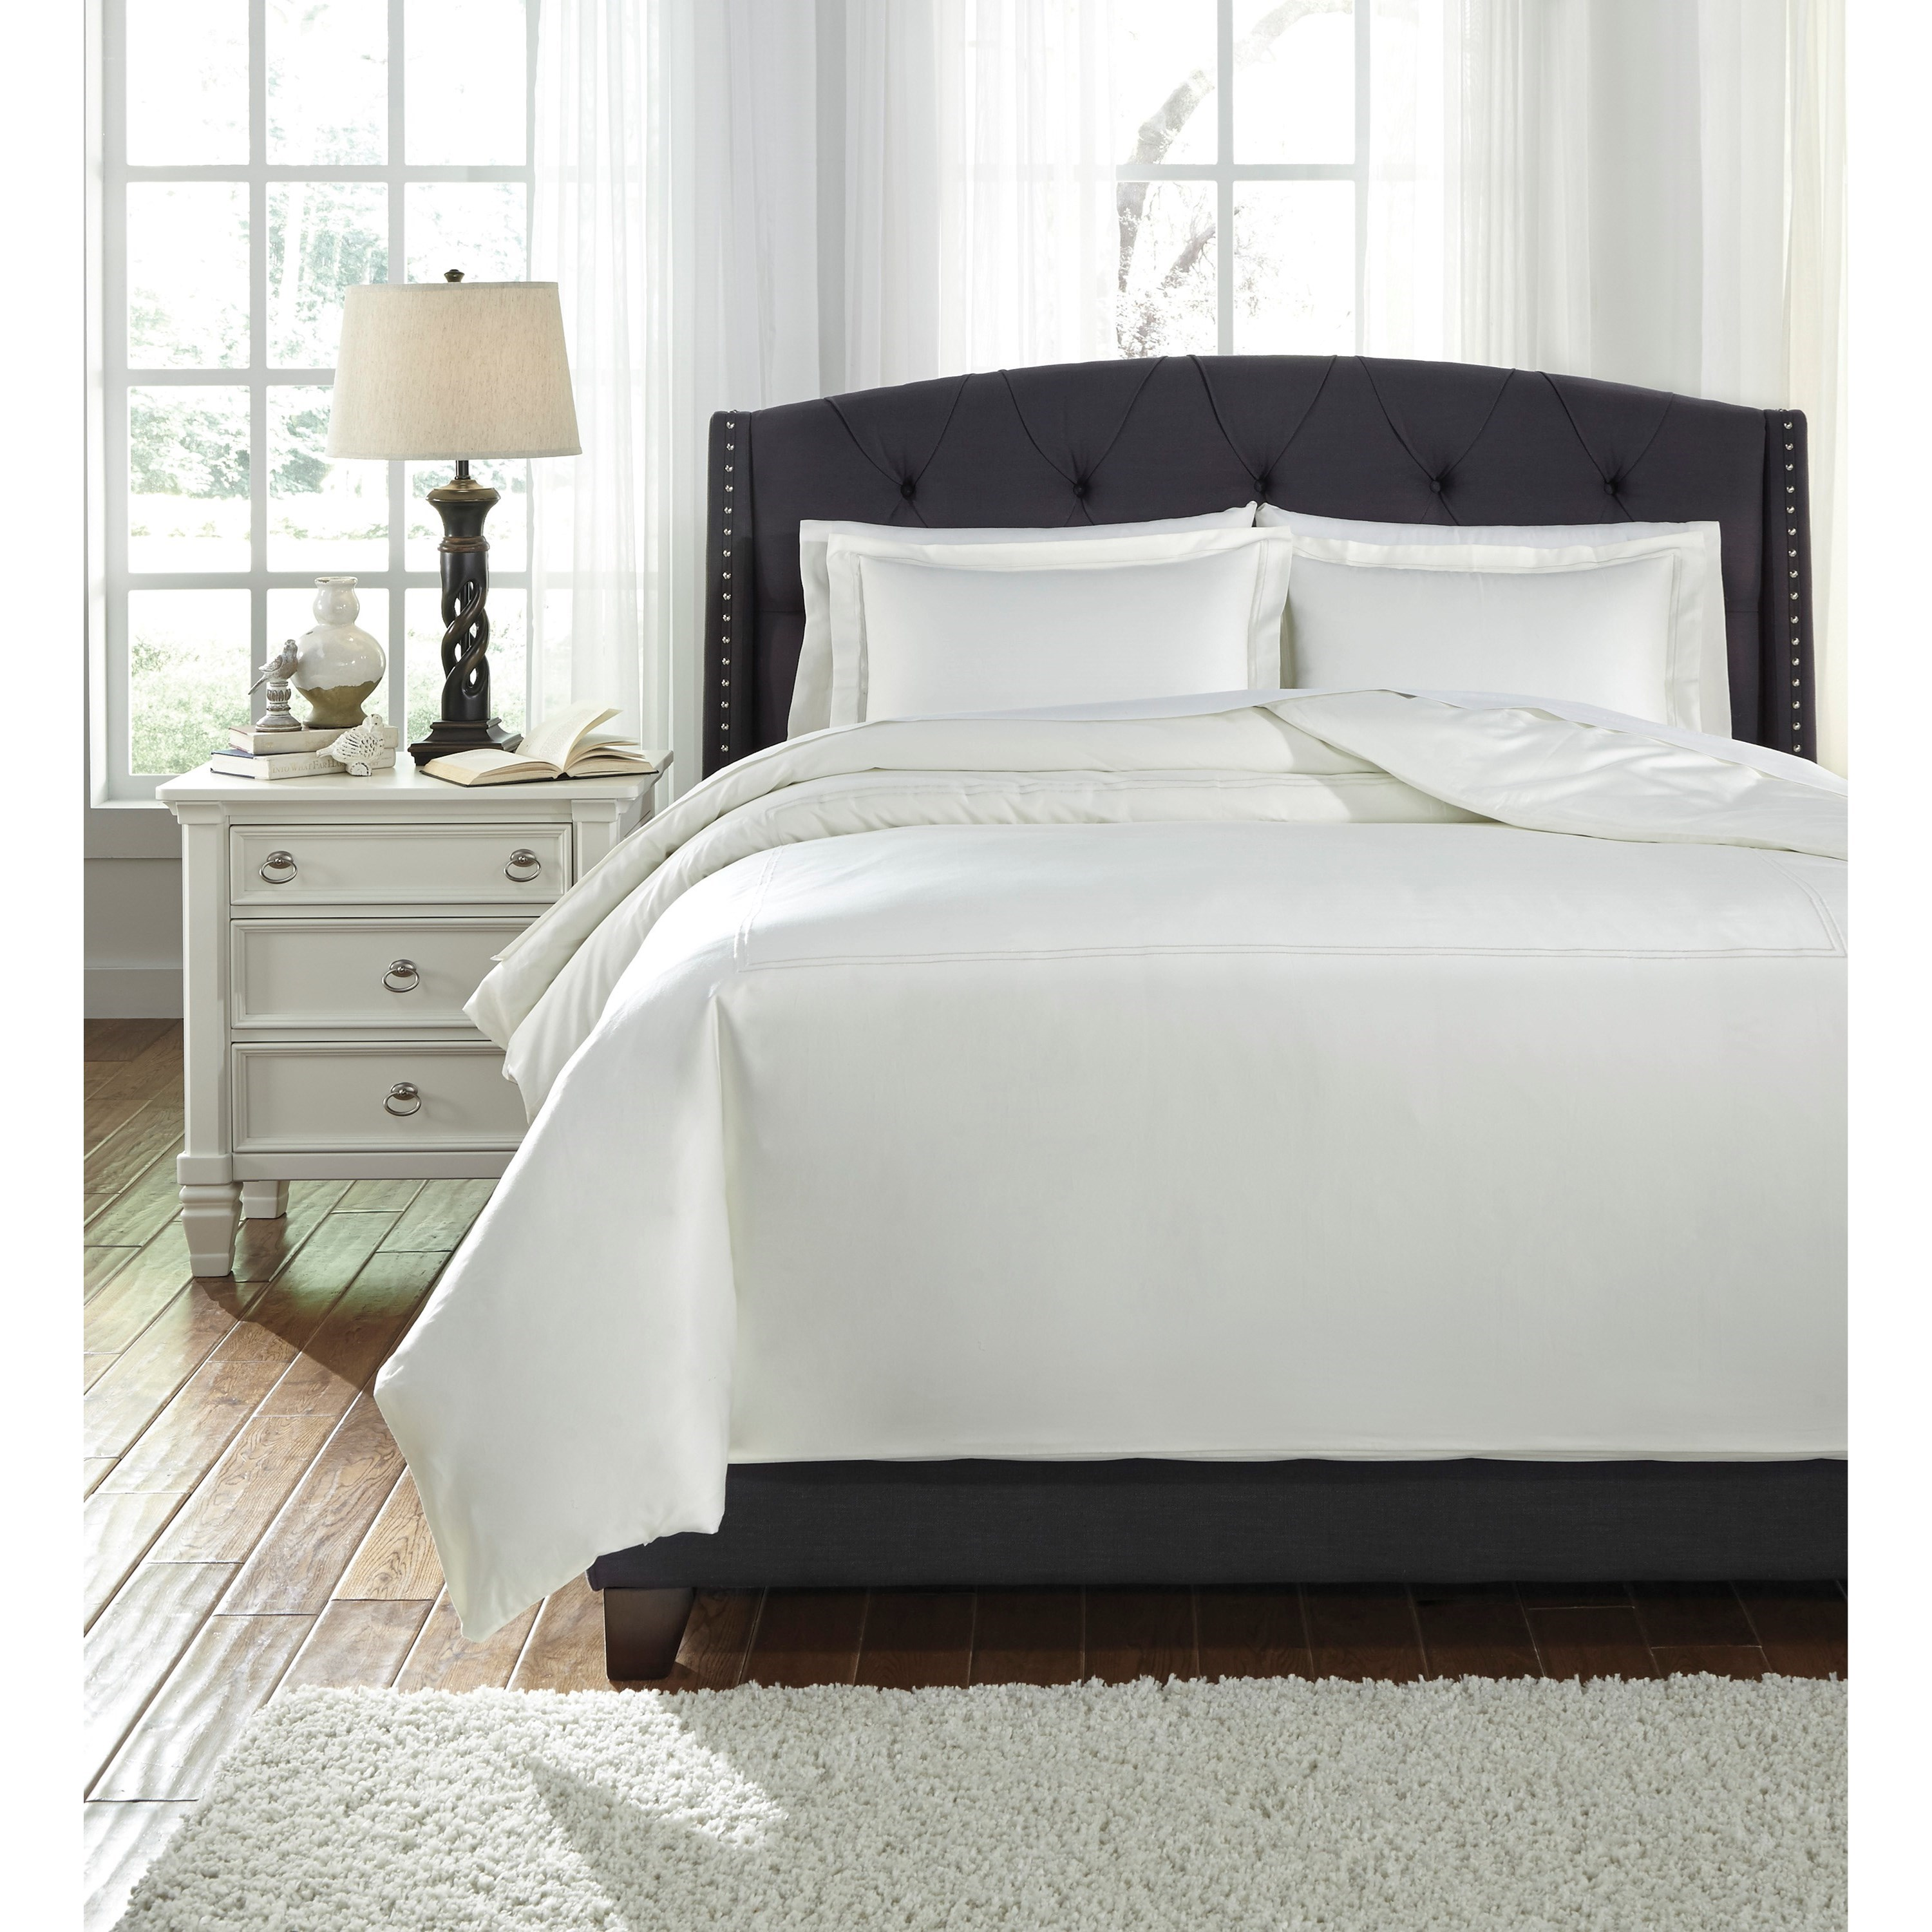 Bedding Sets Queen Maurilio White Comforter Set by Signature Design by Ashley at Household Furniture